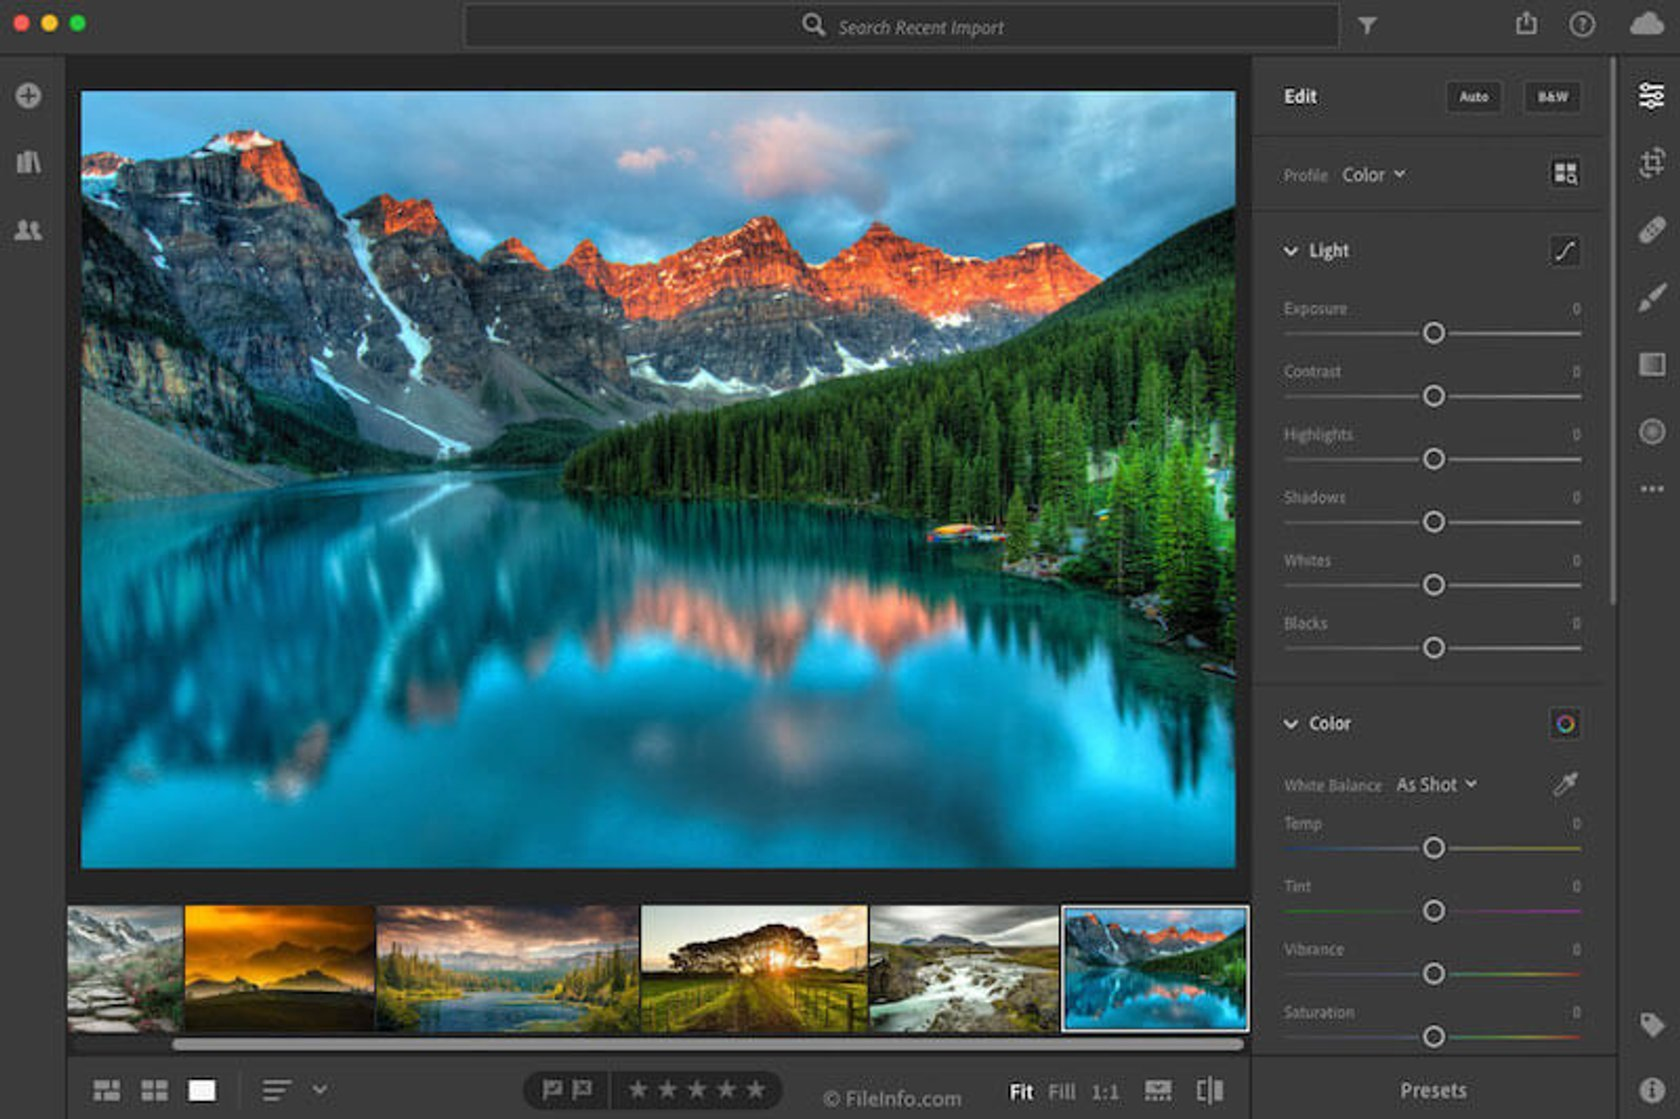 20 Best Photo Editing Software For Beginners 2020 Free Trial And Paid